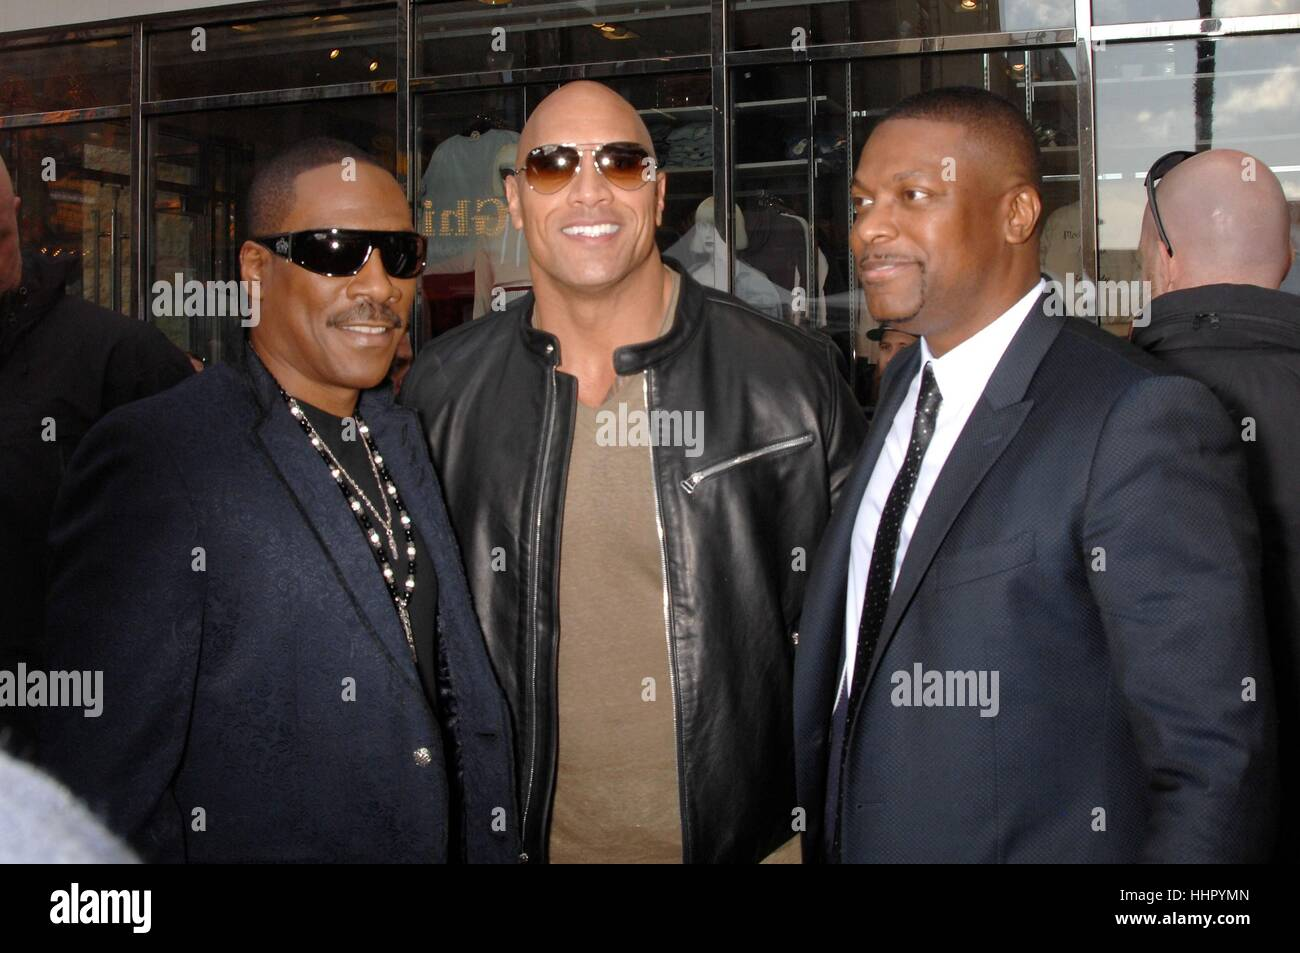 Los Angeles, USA. 19th Jan, 2017. Eddie Murphy, Dwayne ...